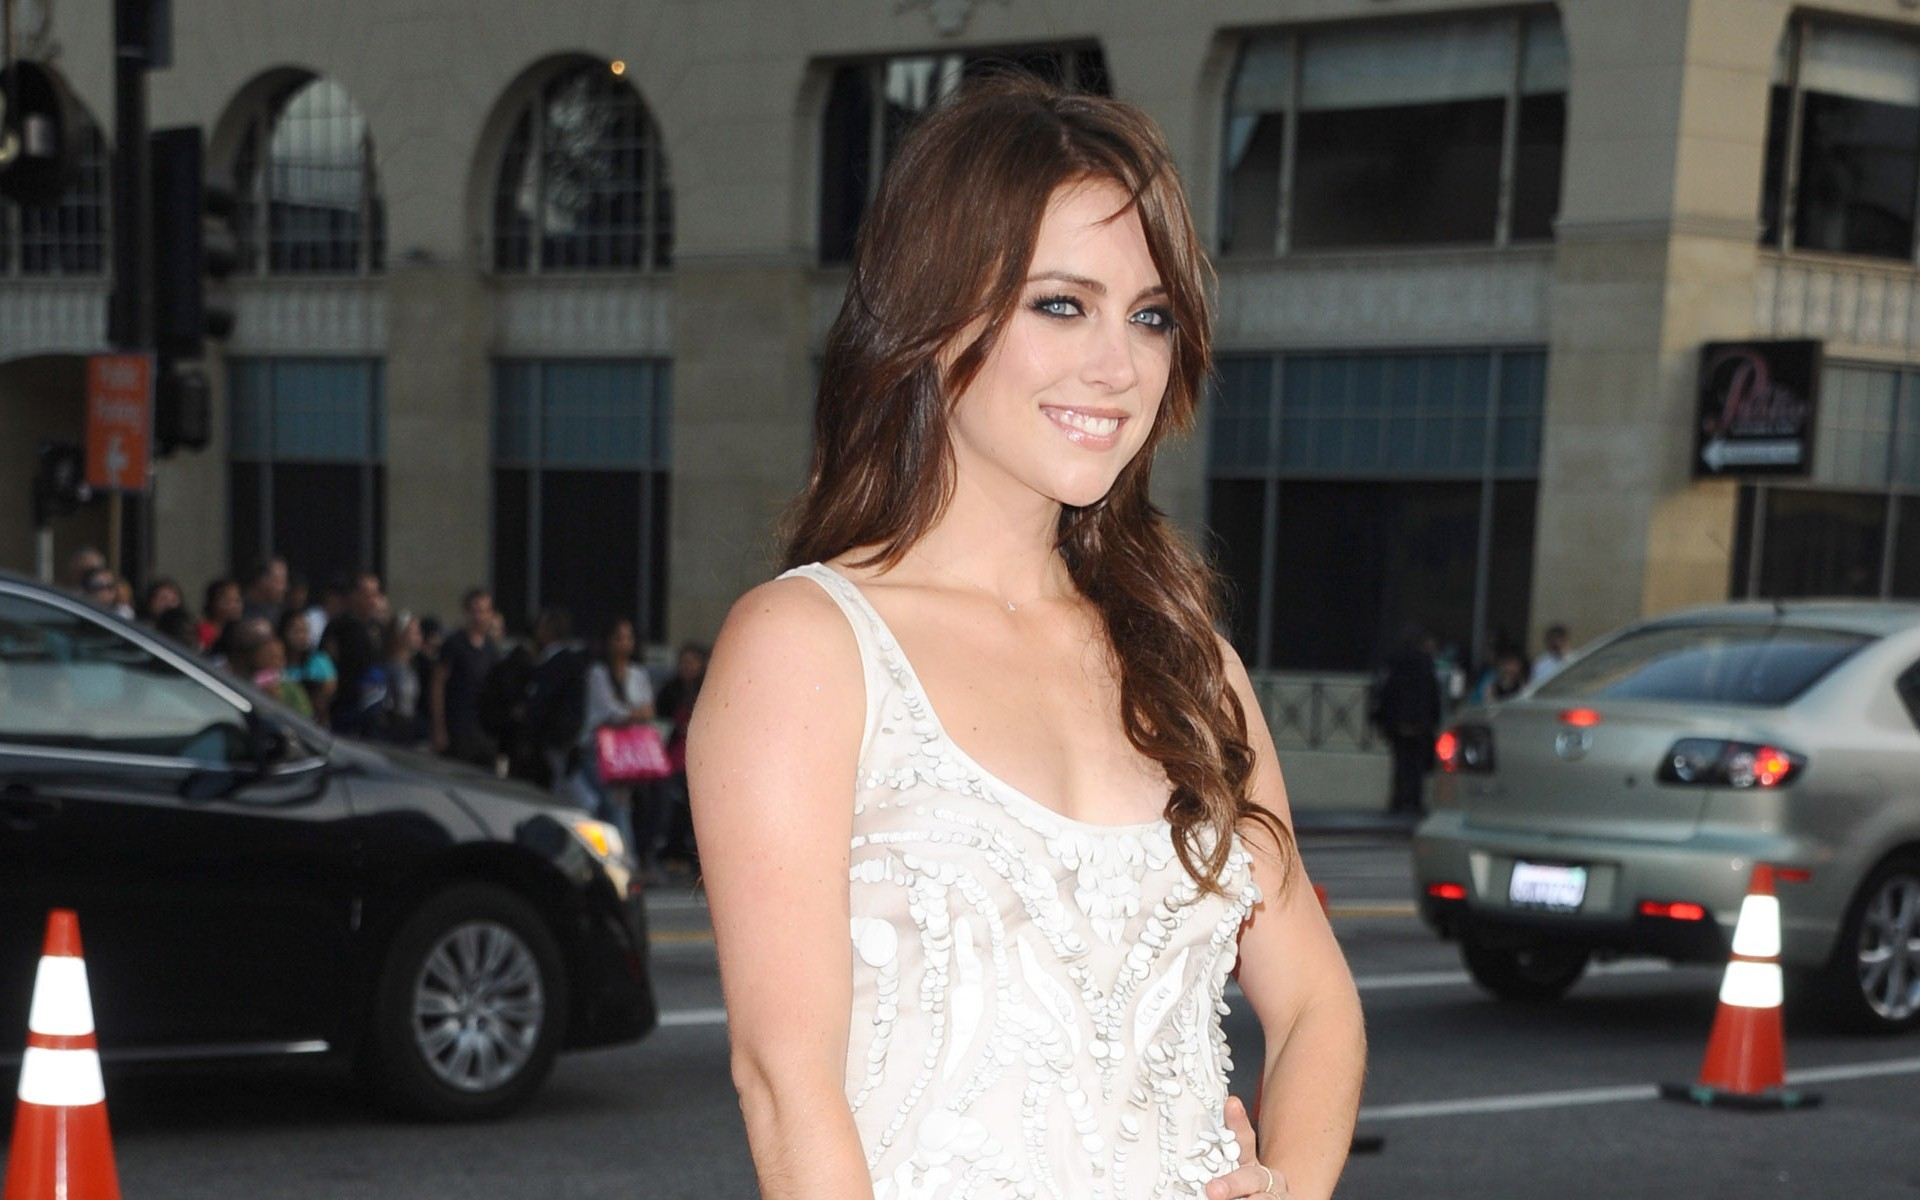 1920x1200 - Jessica Stroup Wallpapers 33